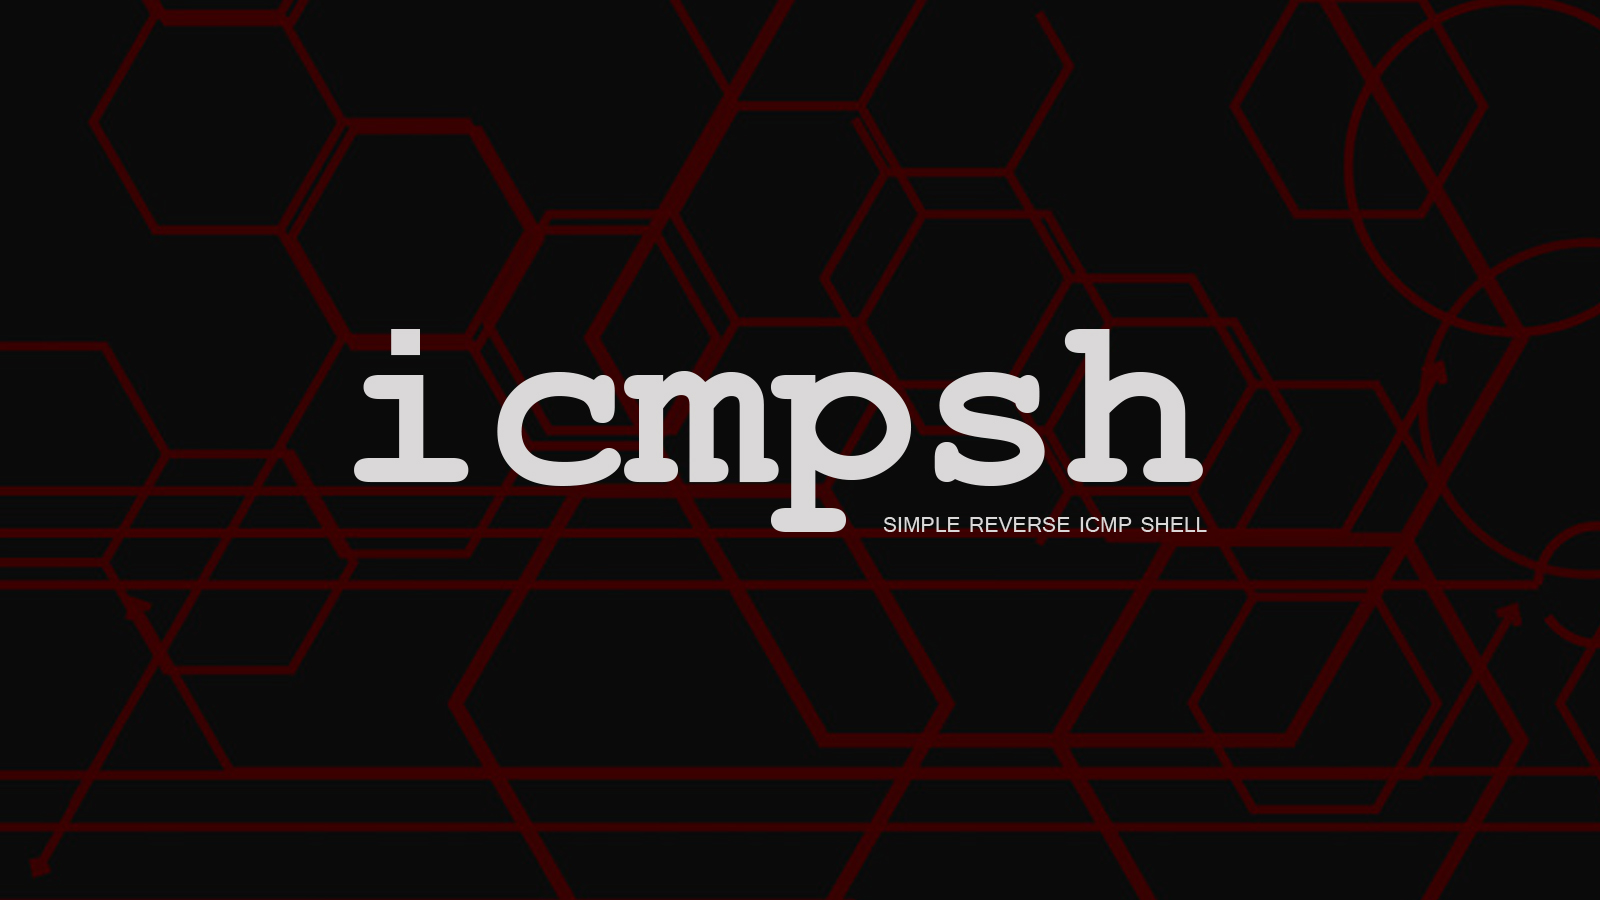 icmpsh - Simple Reverse ICMP Shell